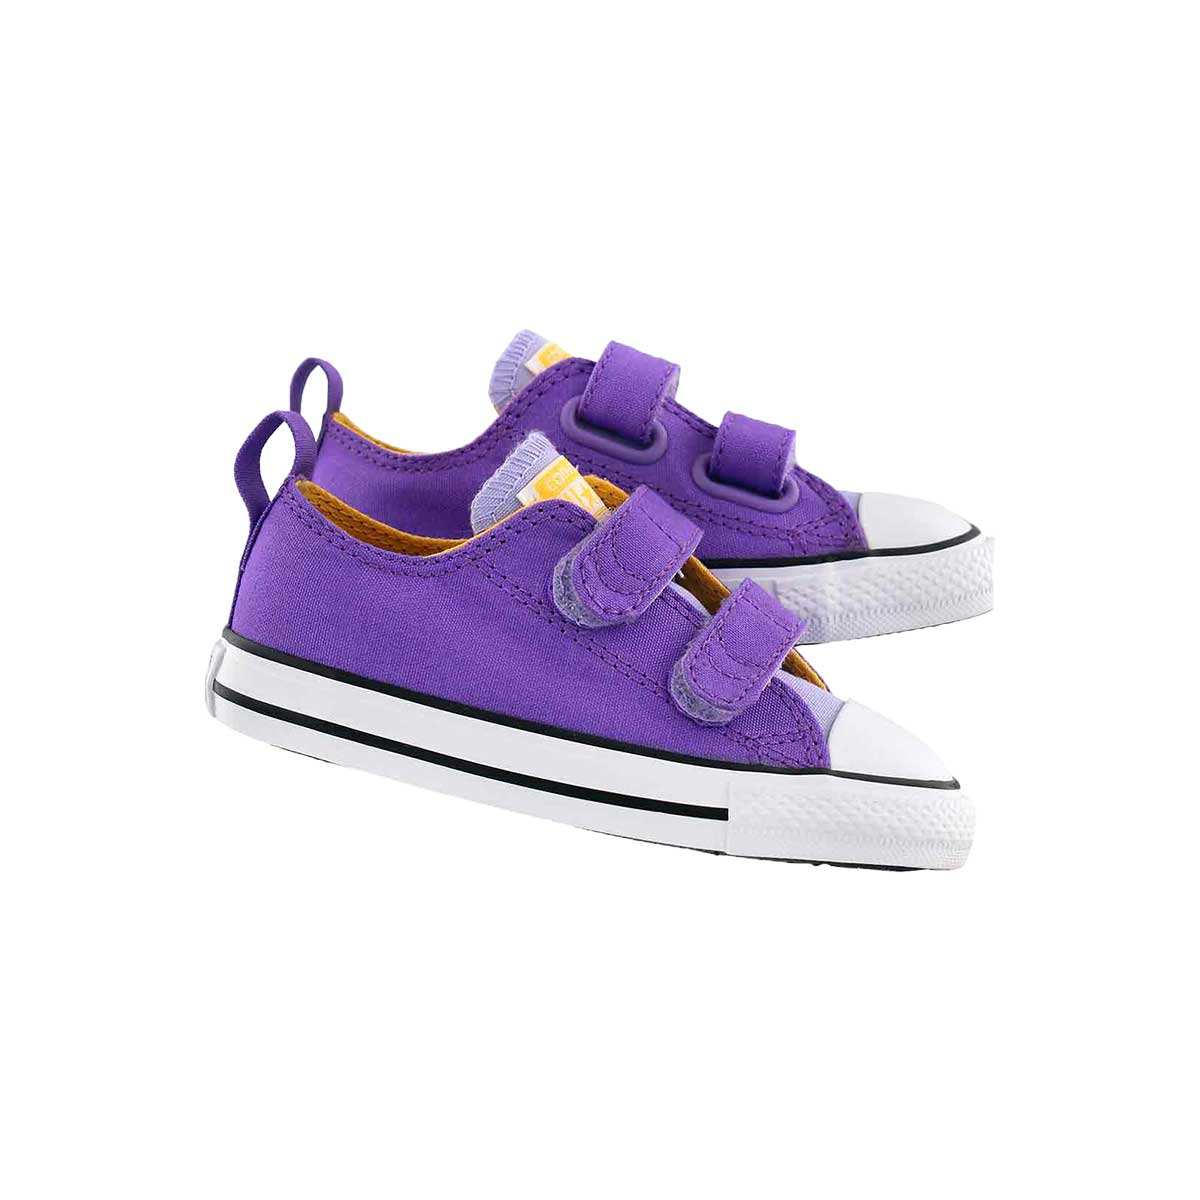 Infs-g CT AS 2V bright violet sneaker